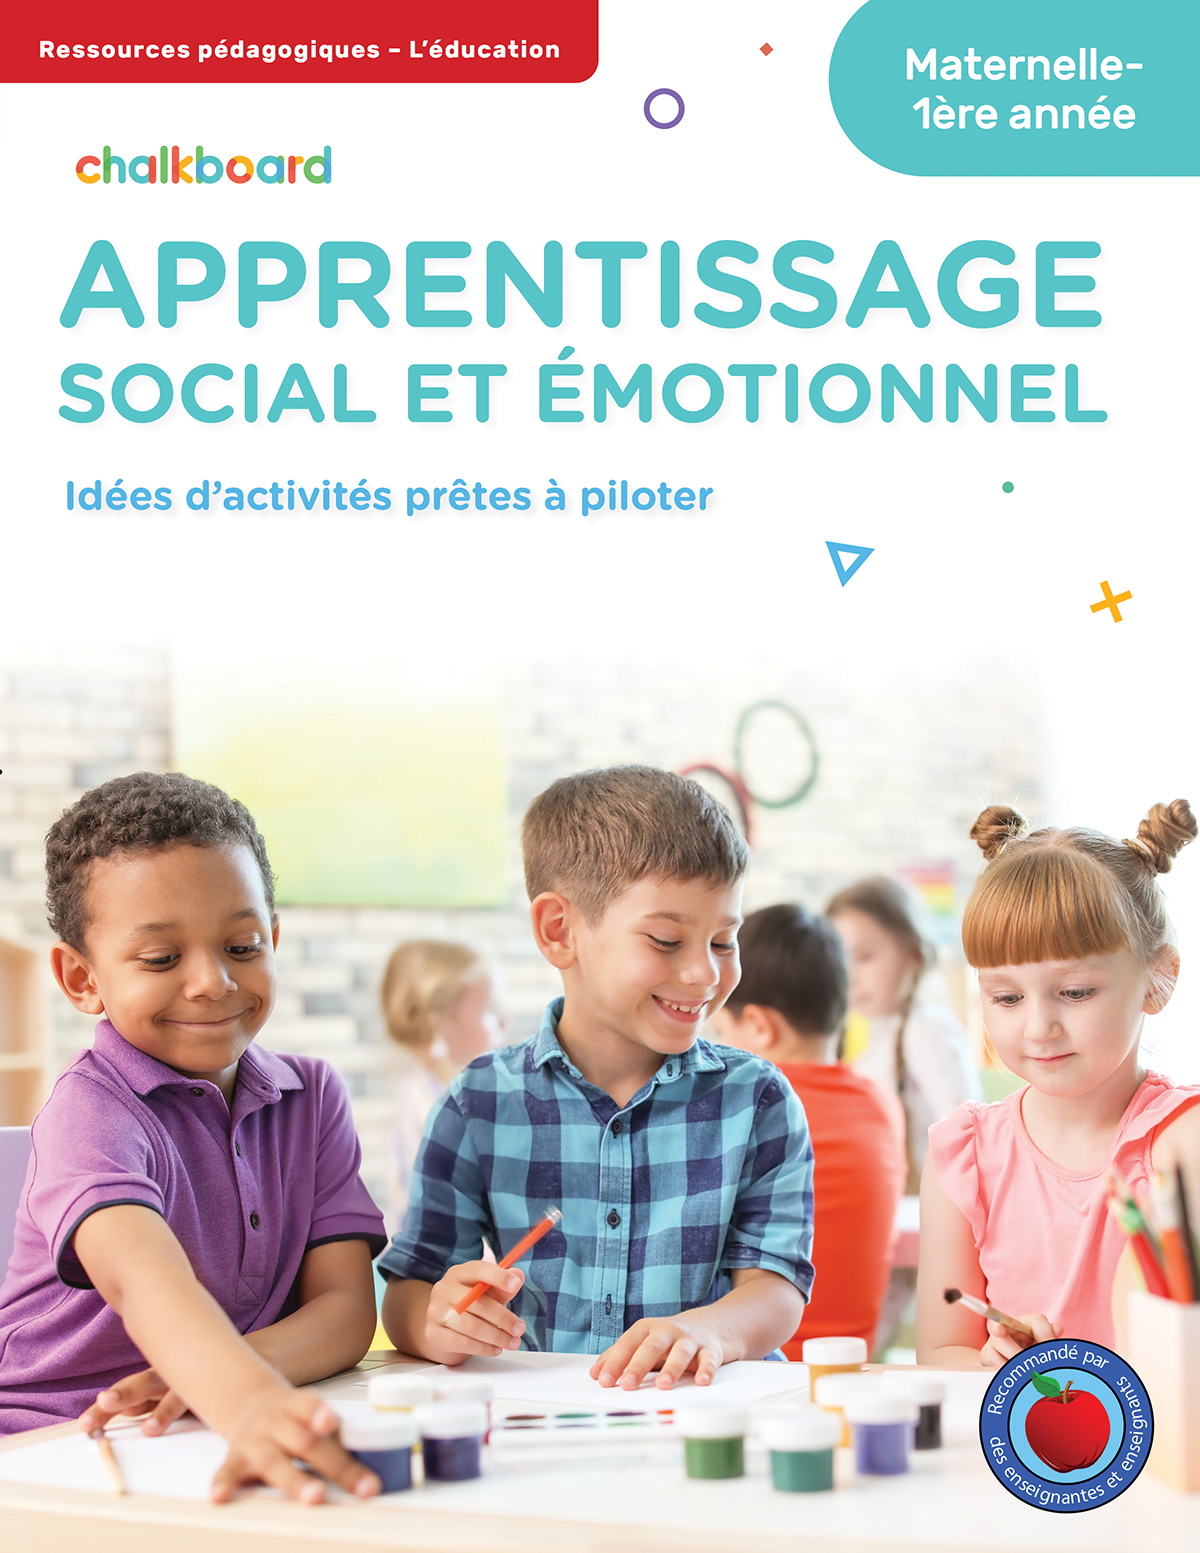 Apprentissage social et émotionnel